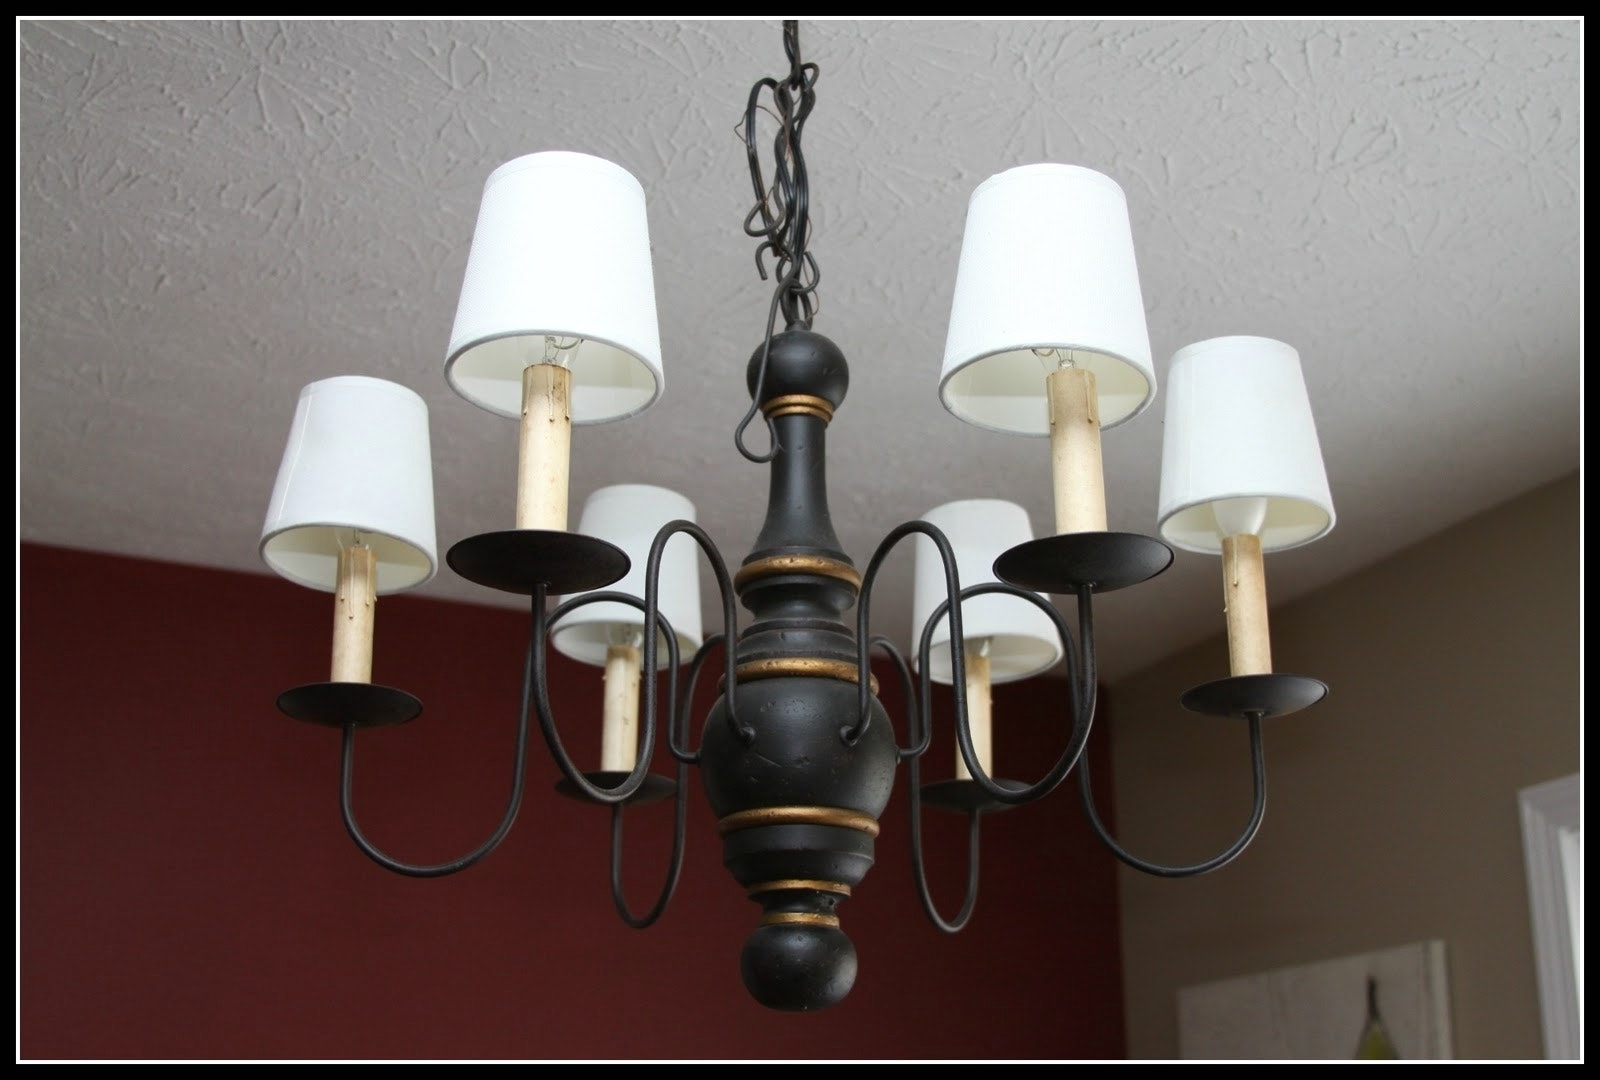 Lamp Shades For Chandeliers And Chandelier Lighting Design Store For Recent Lampshade Chandeliers (View 20 of 20)